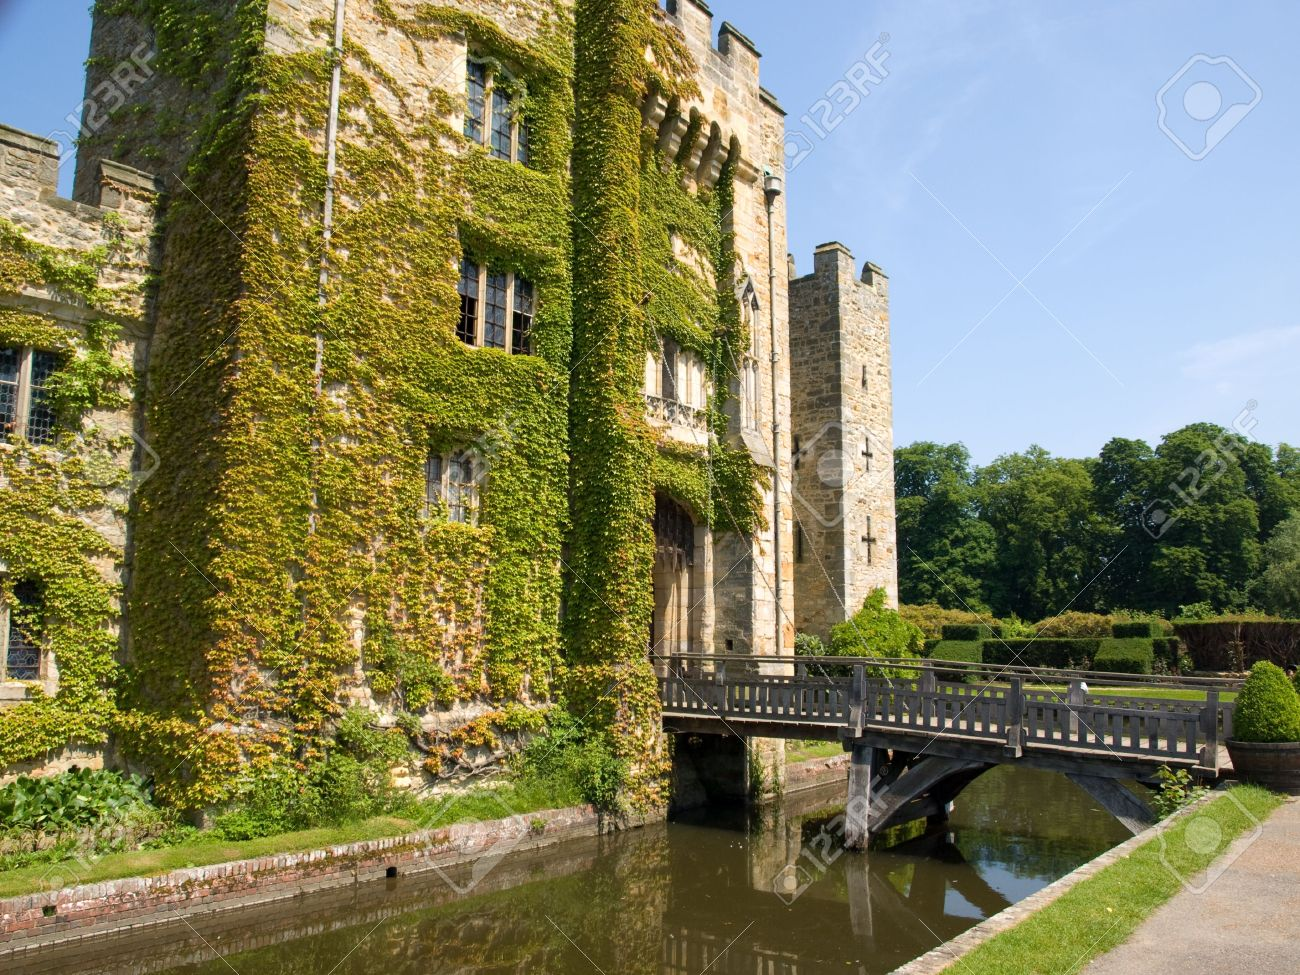 An Old English Castle With A Bridge Over A Moat Stock Photo Picture